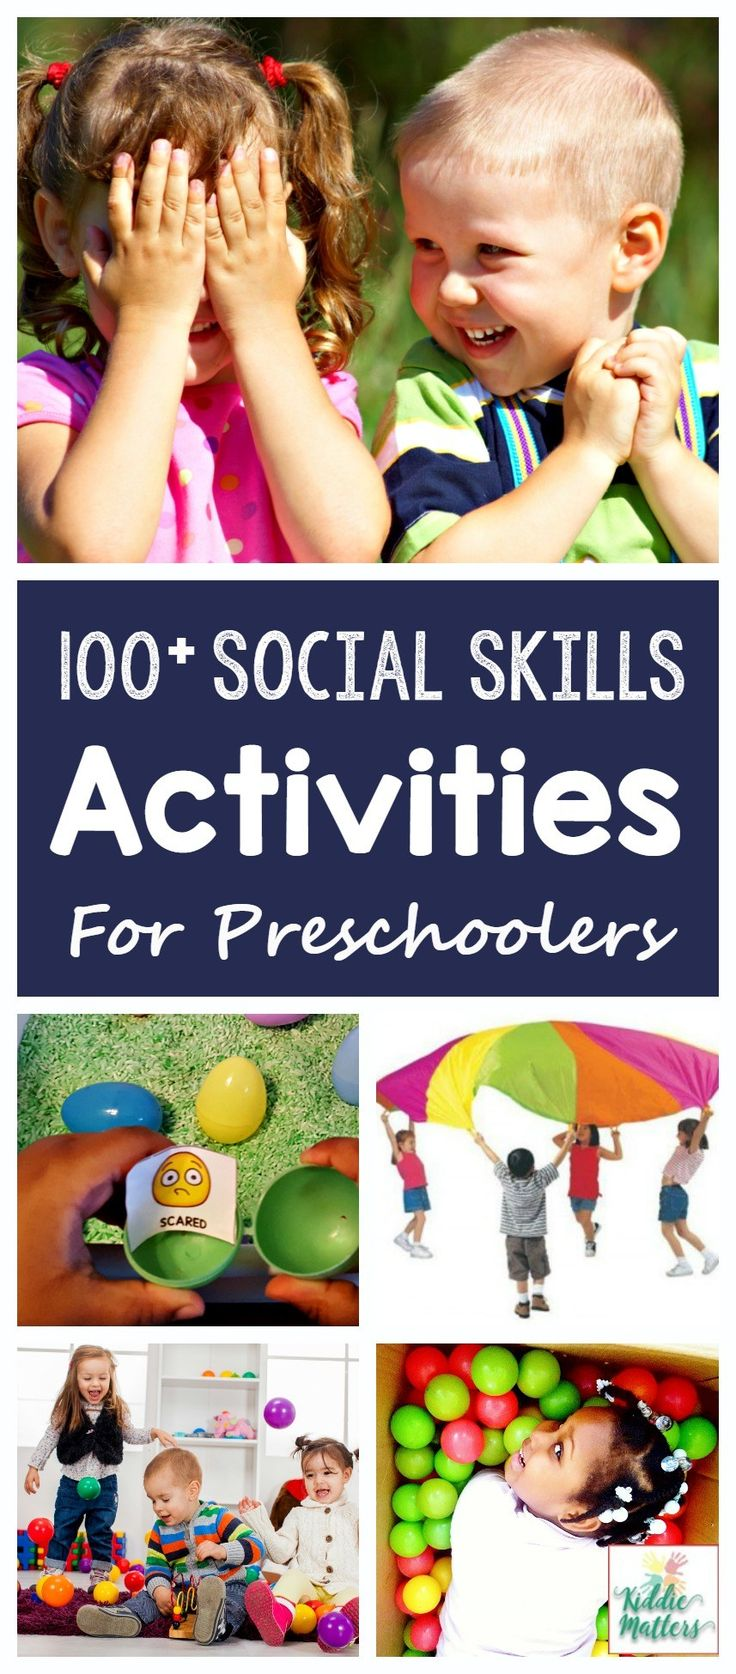 Over 100 social skills activities for preschoolers. These activities teach young children social skills such as how to make and keep friends, listen and follow directions, how to express big emotions, and using good manners.